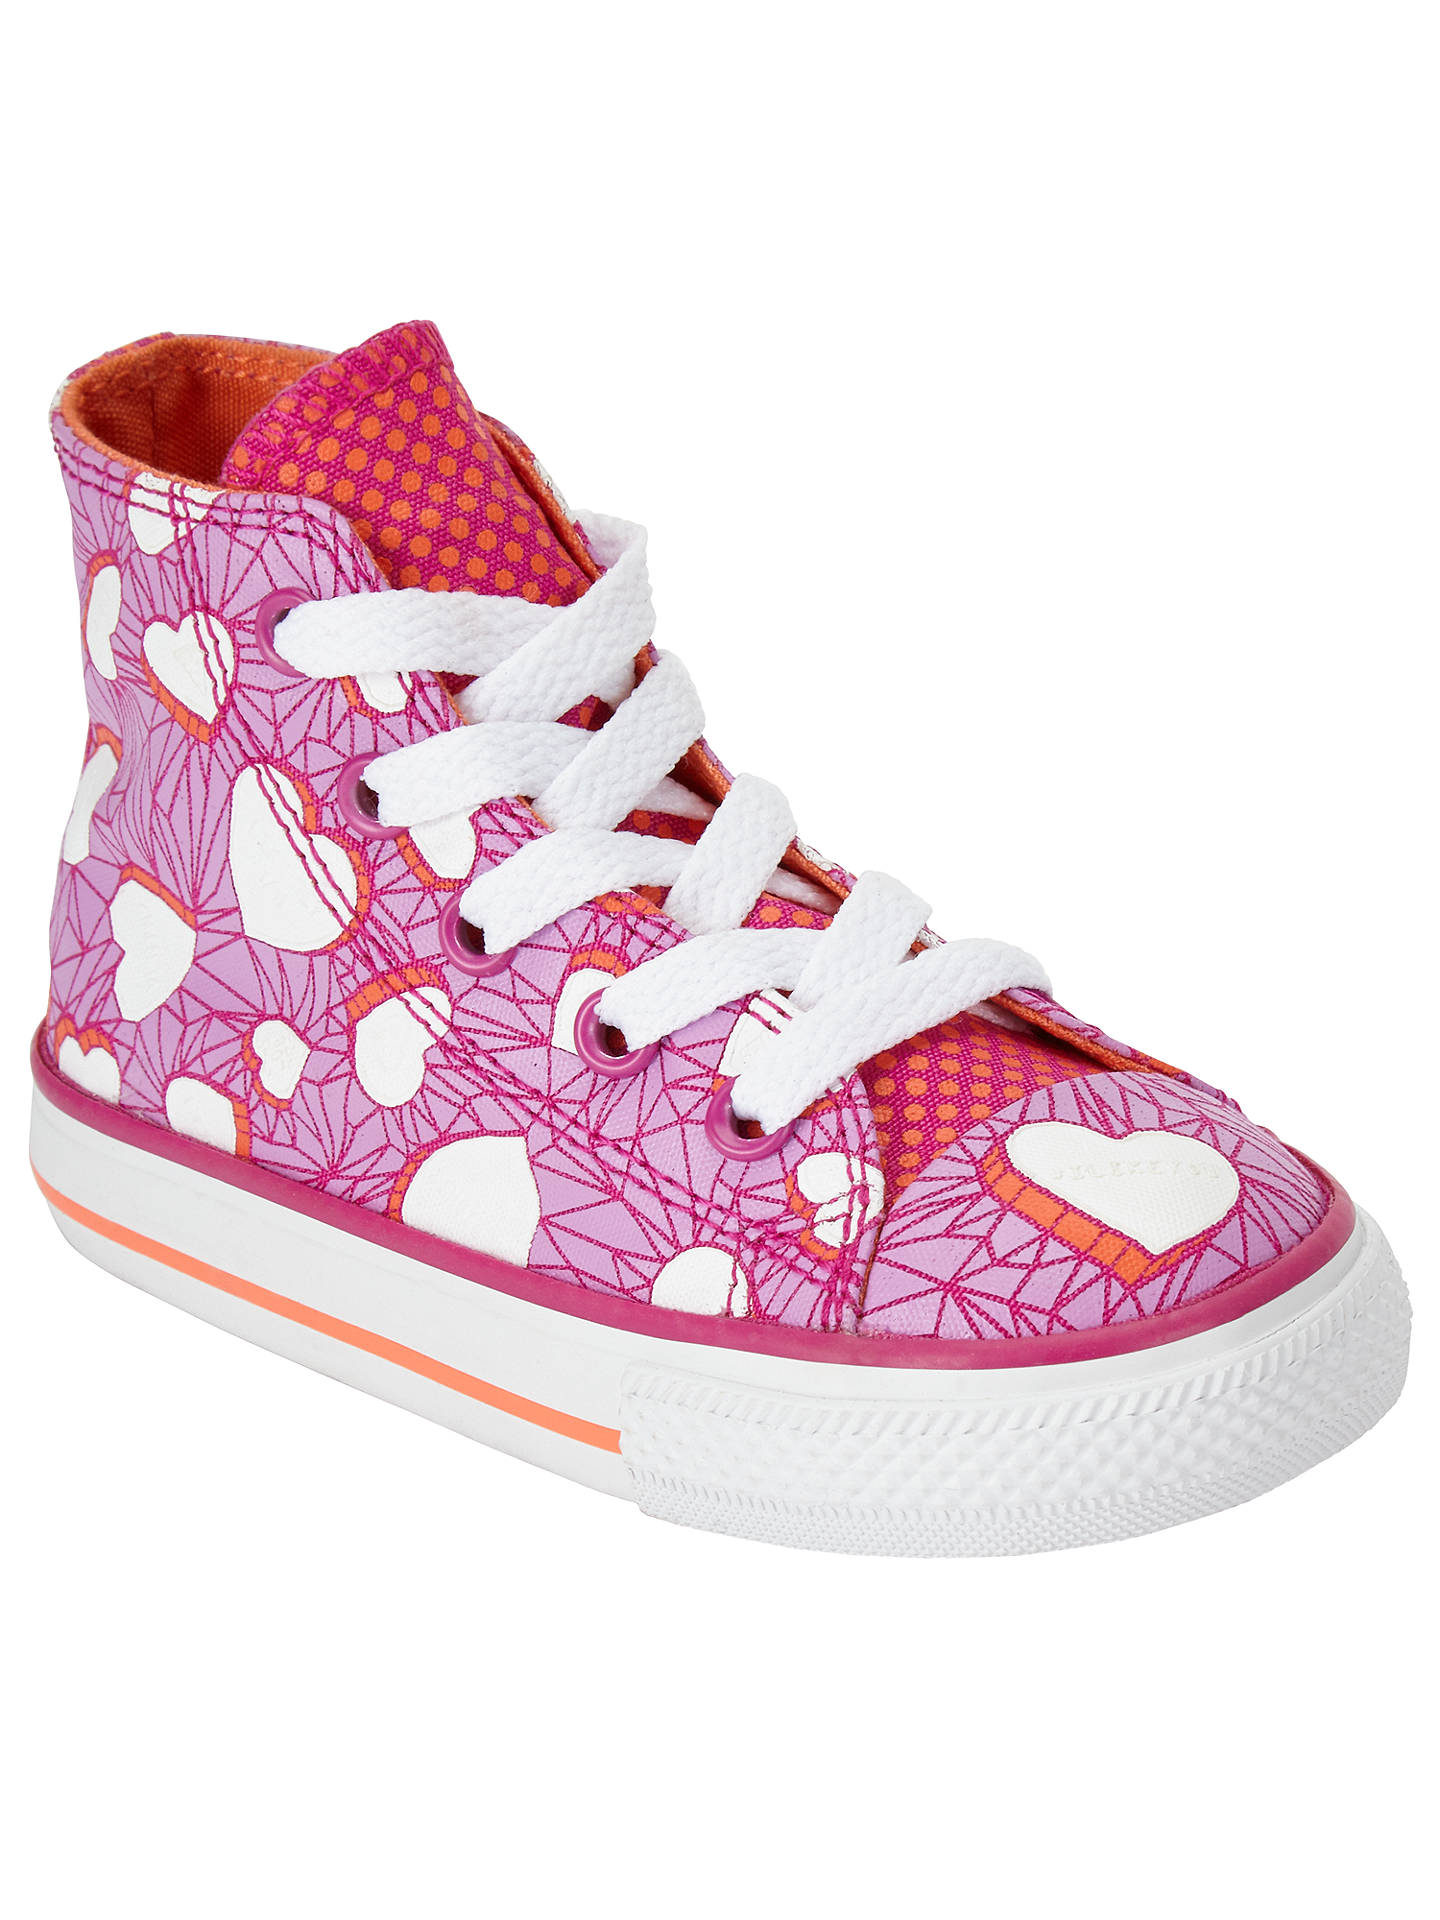 BuyConverse Children s Hi Top Valentine Heart Shoes 8065b1f3c